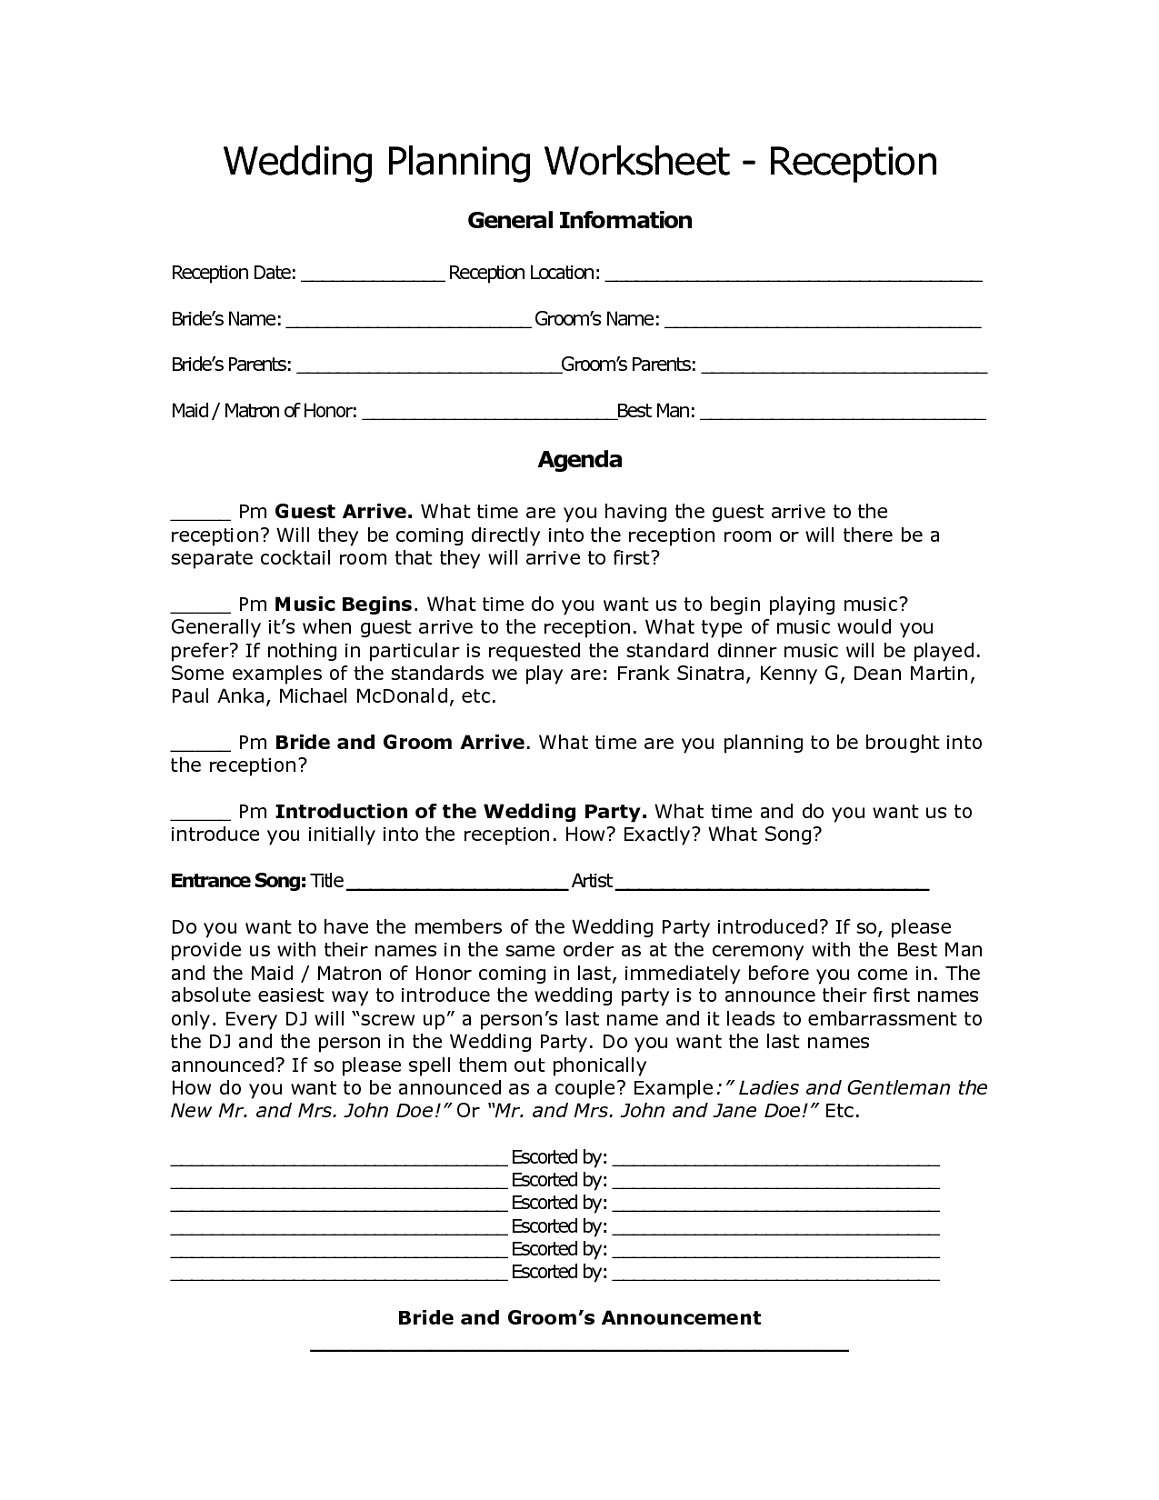 Reception Worksheets Wedding